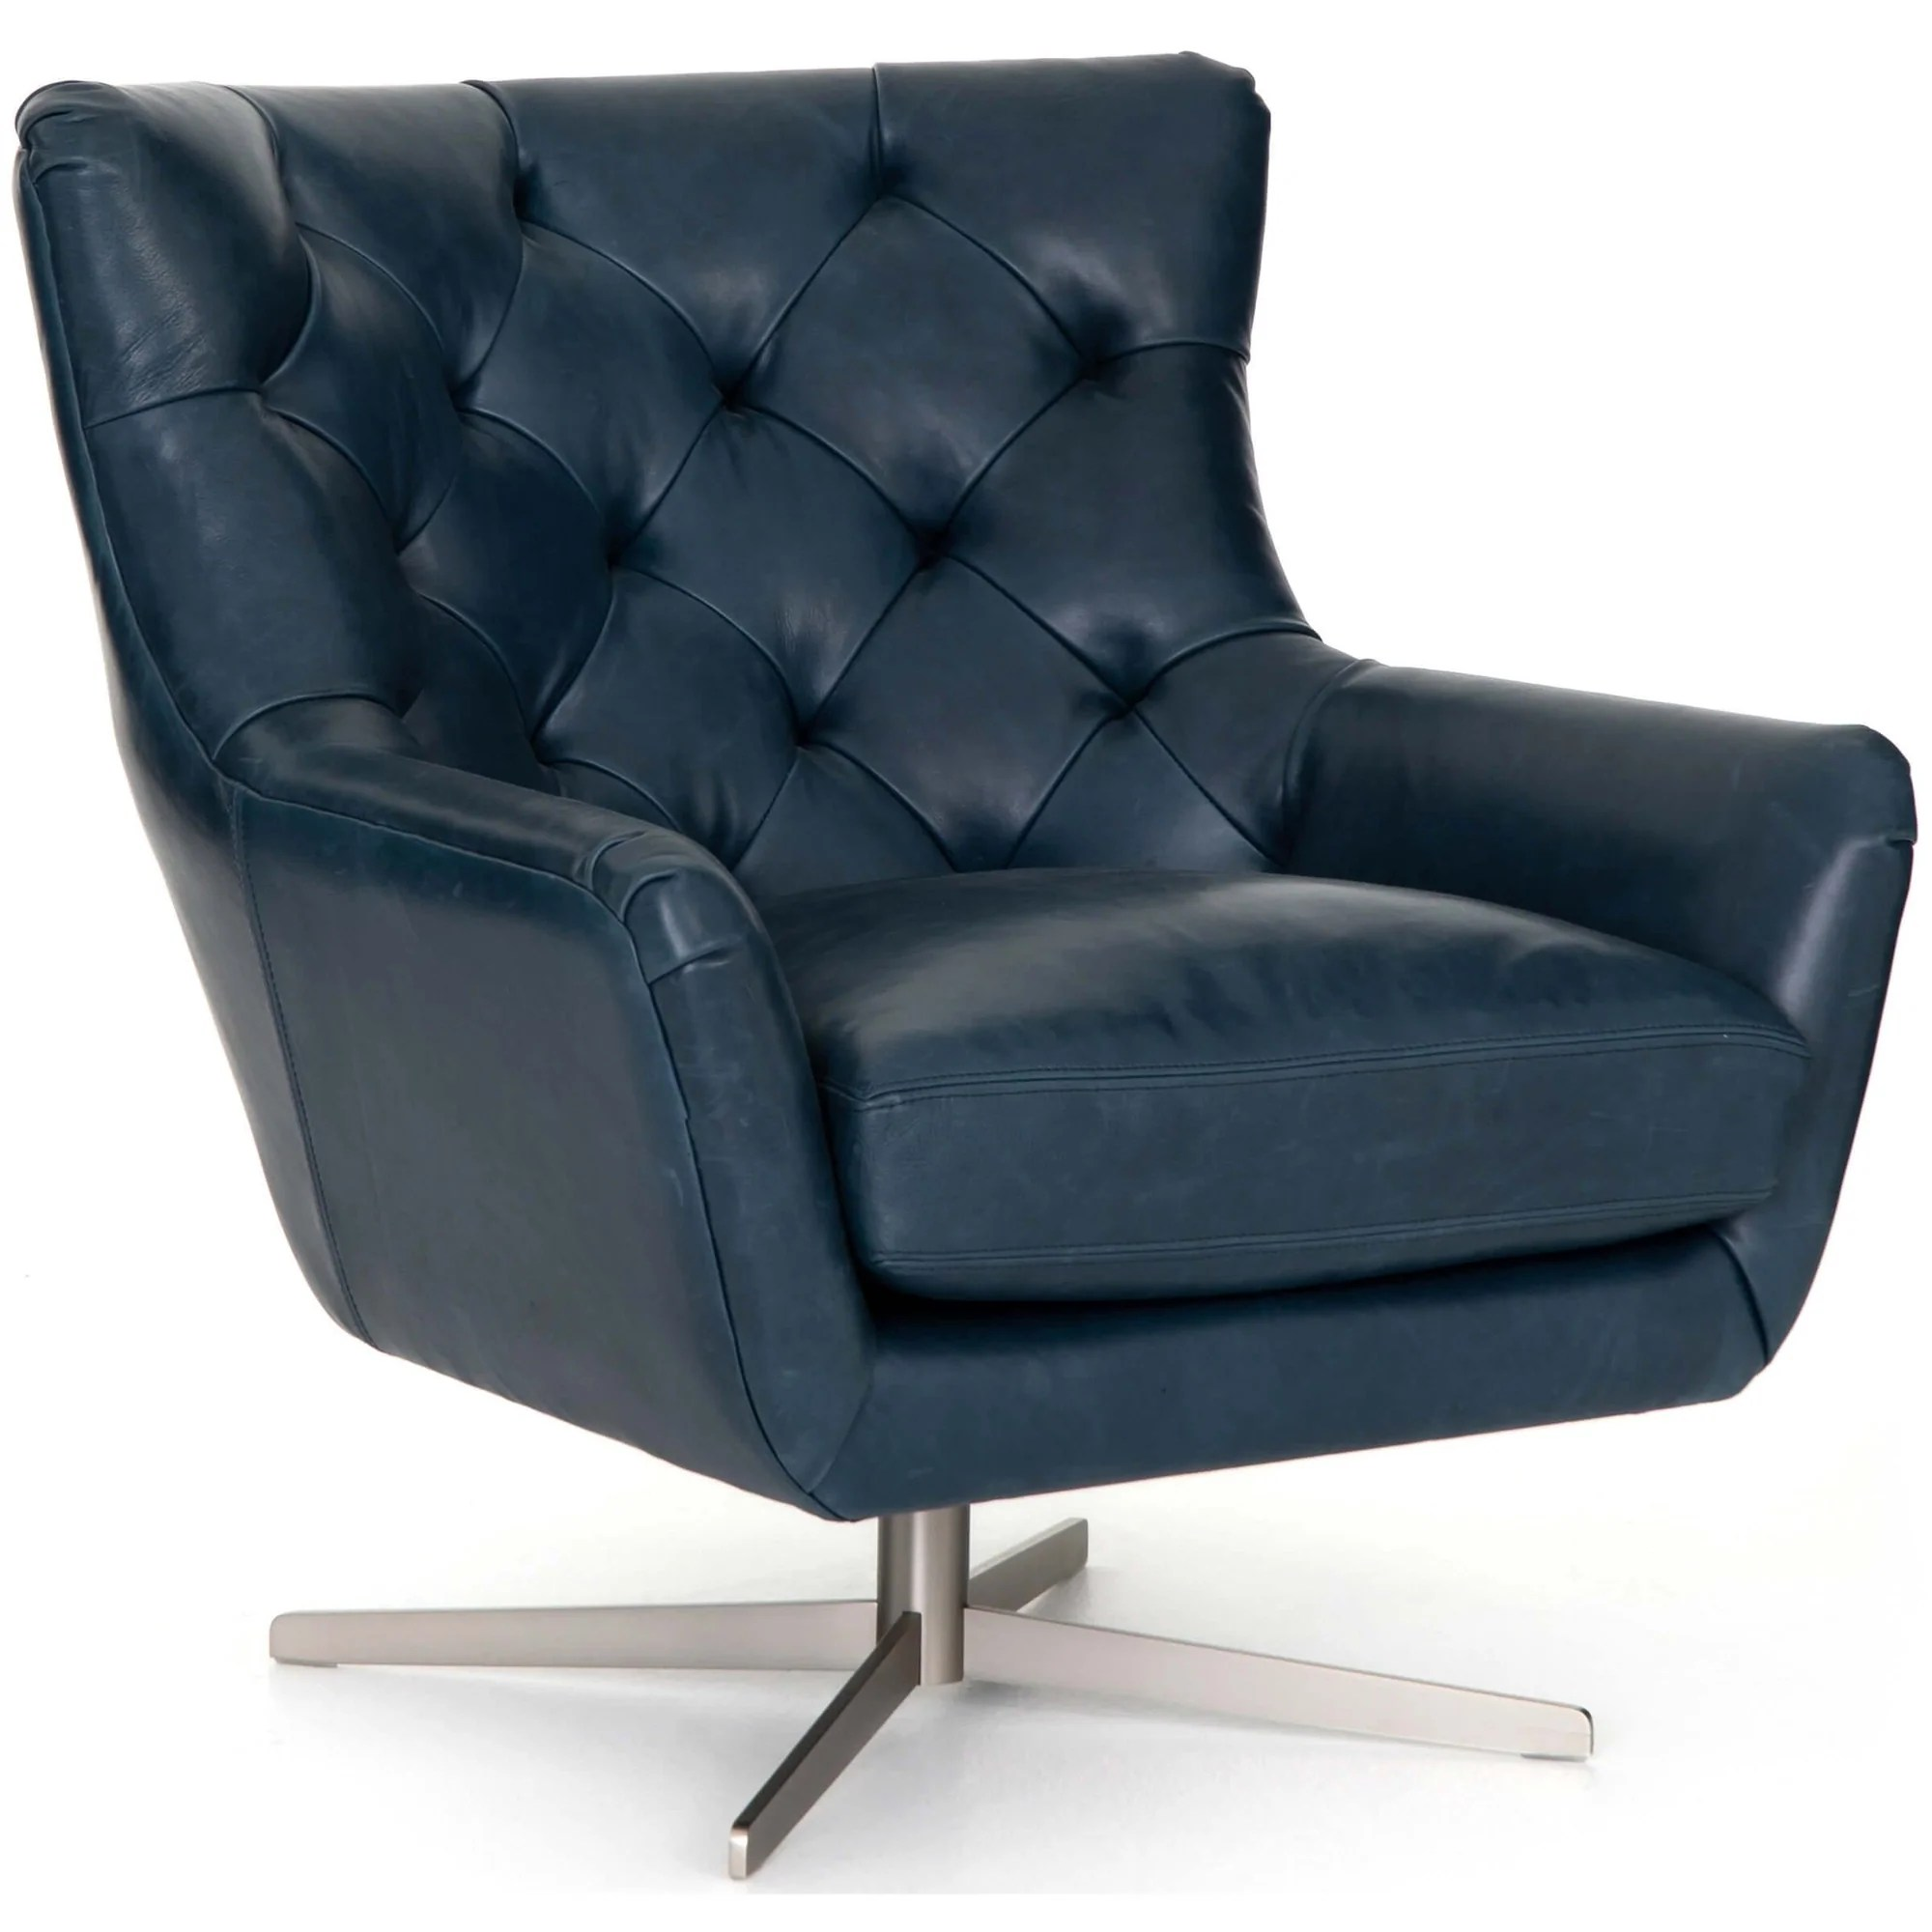 Raymond Leather Swivel Chair Dakota Sapphire High Fashion Home